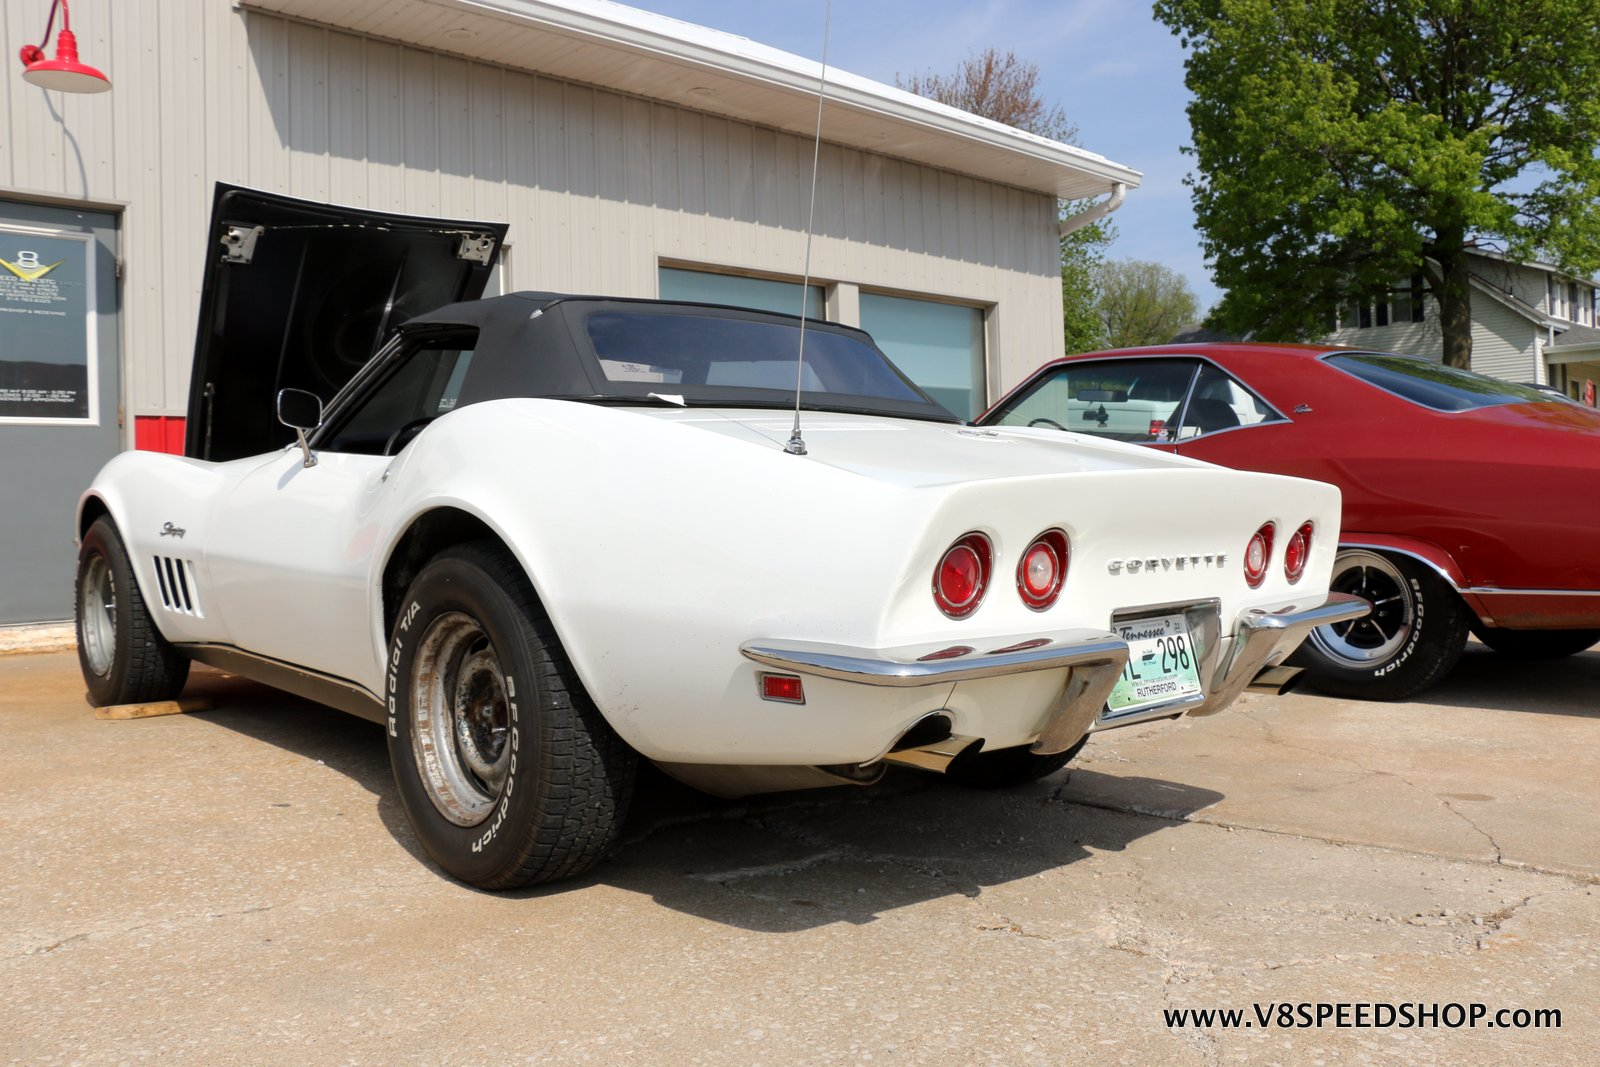 1972 Chevrolet Corvette Upgrades at the V8 Speed and Resto Shop